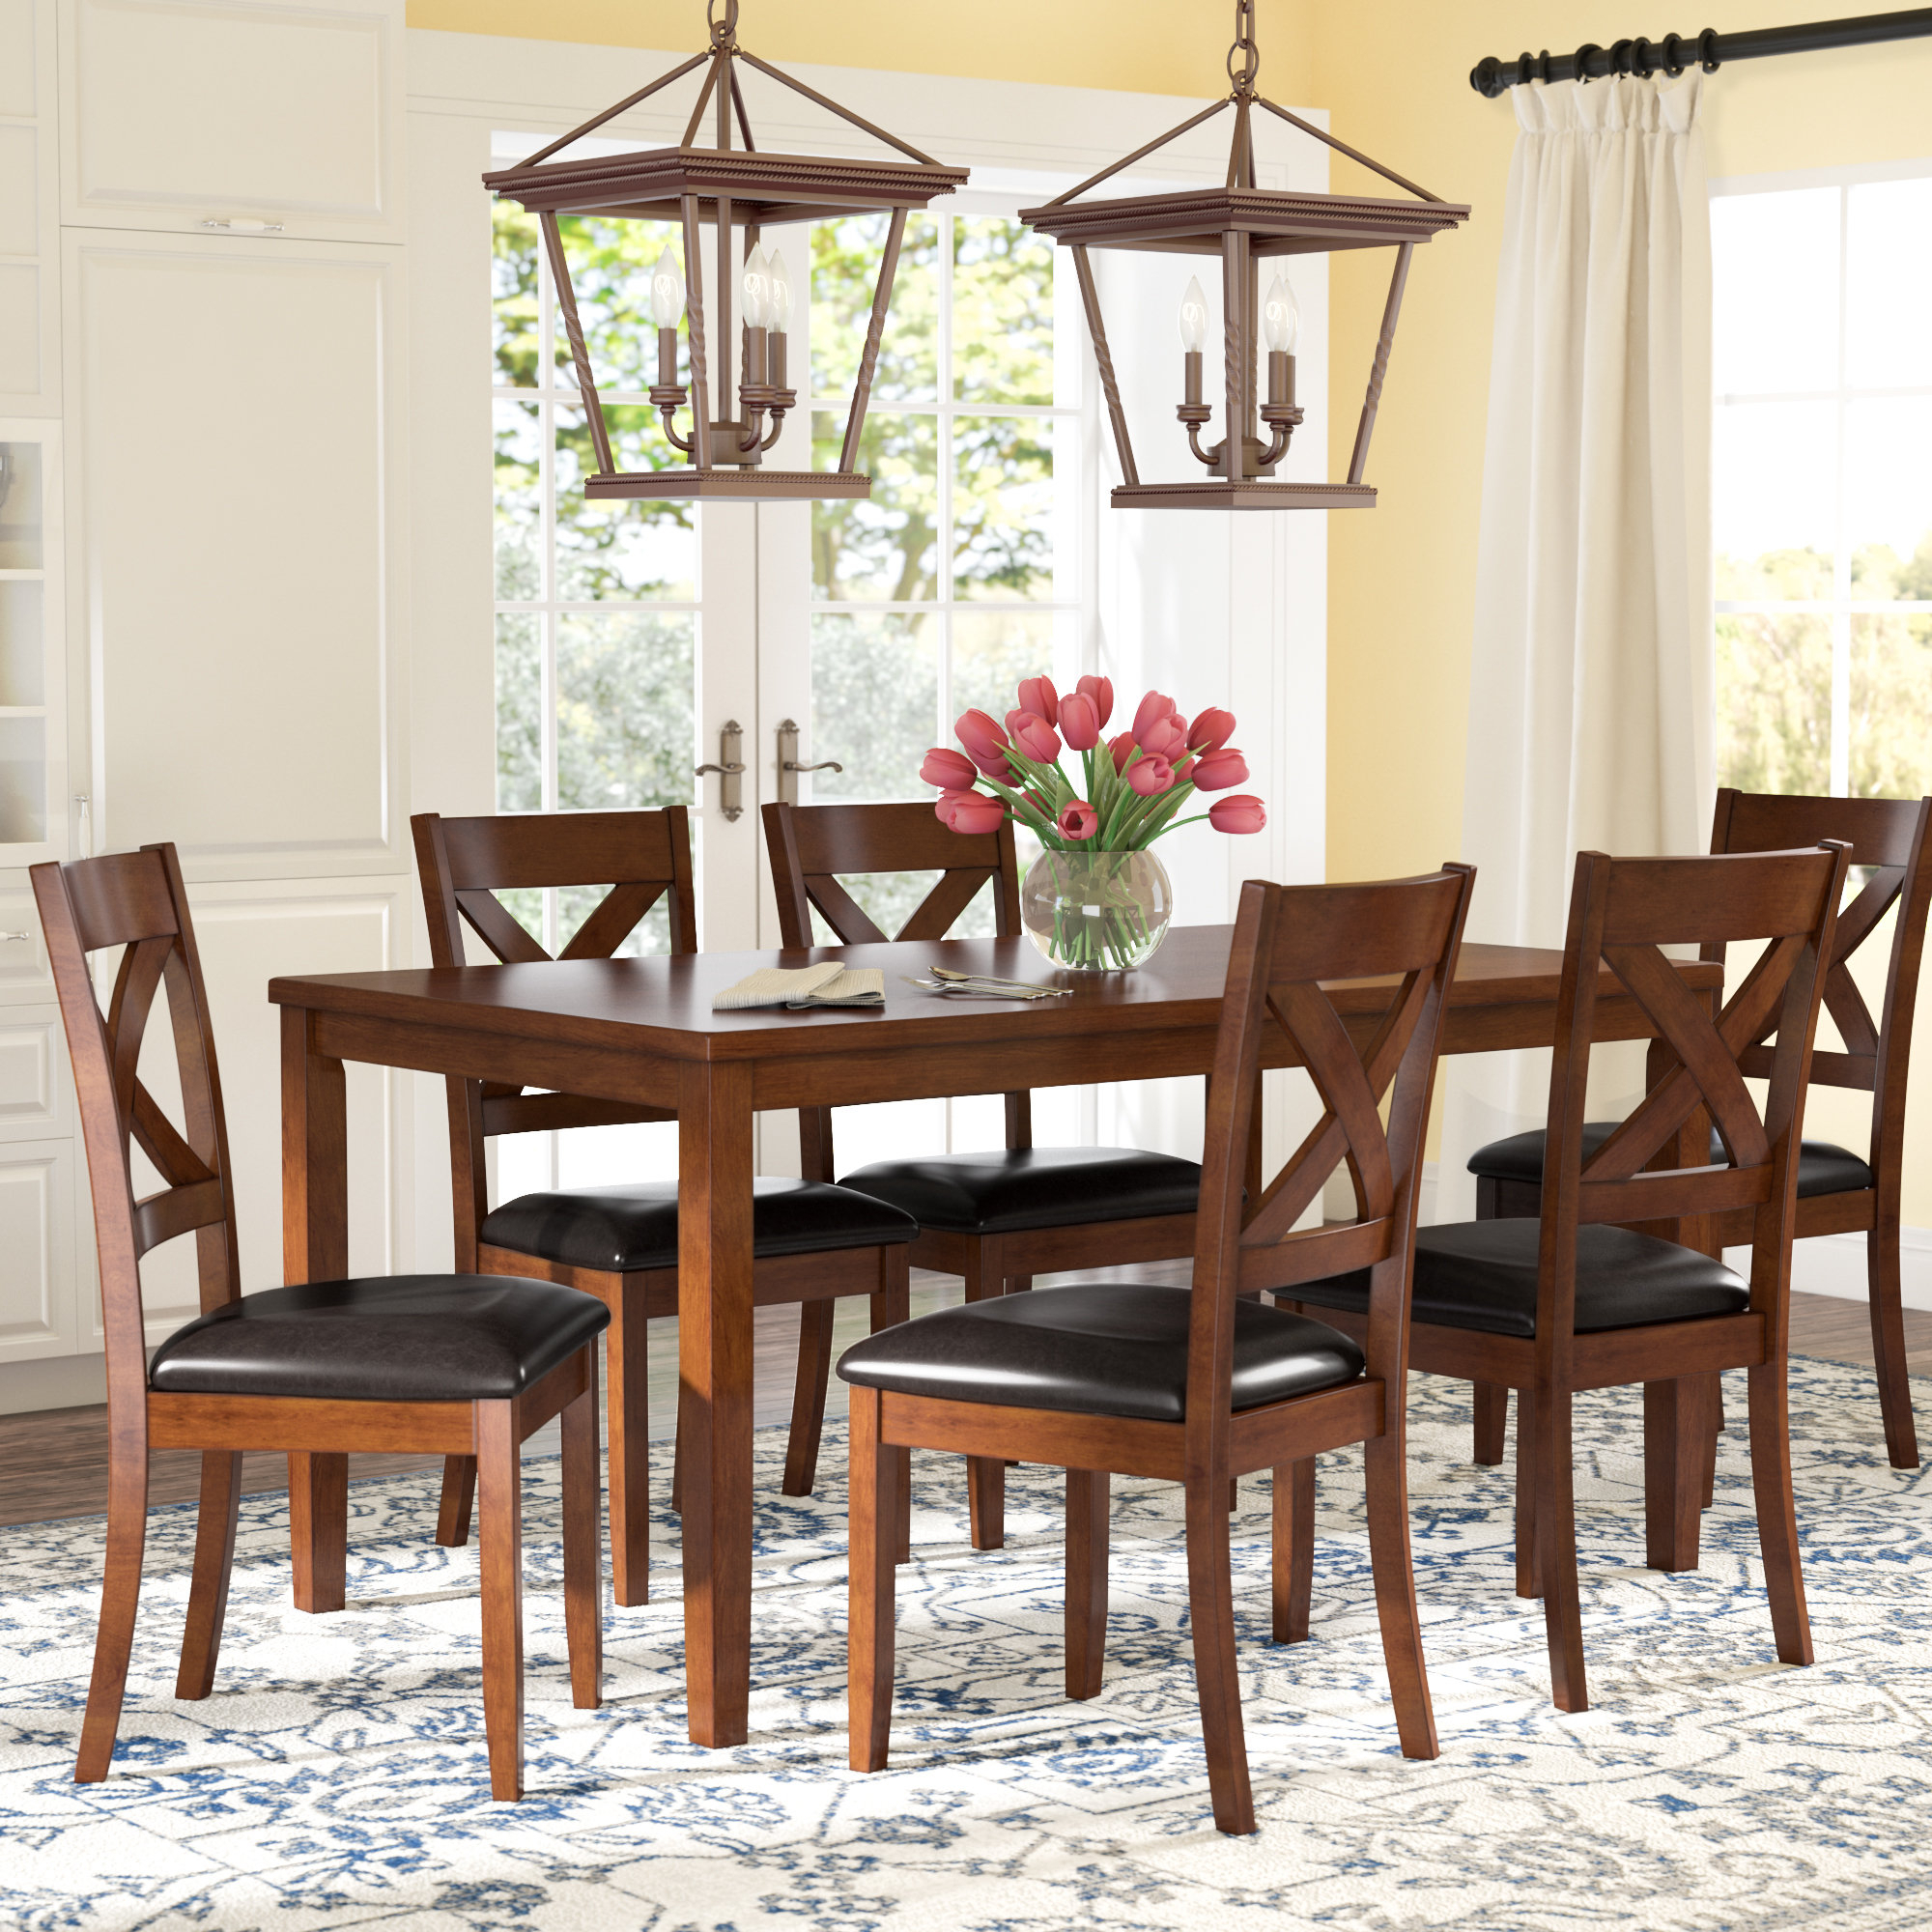 Nadine 7 Piece Dining Set Inside Latest West Hill Family Table 3 Piece Dining Sets (View 8 of 20)